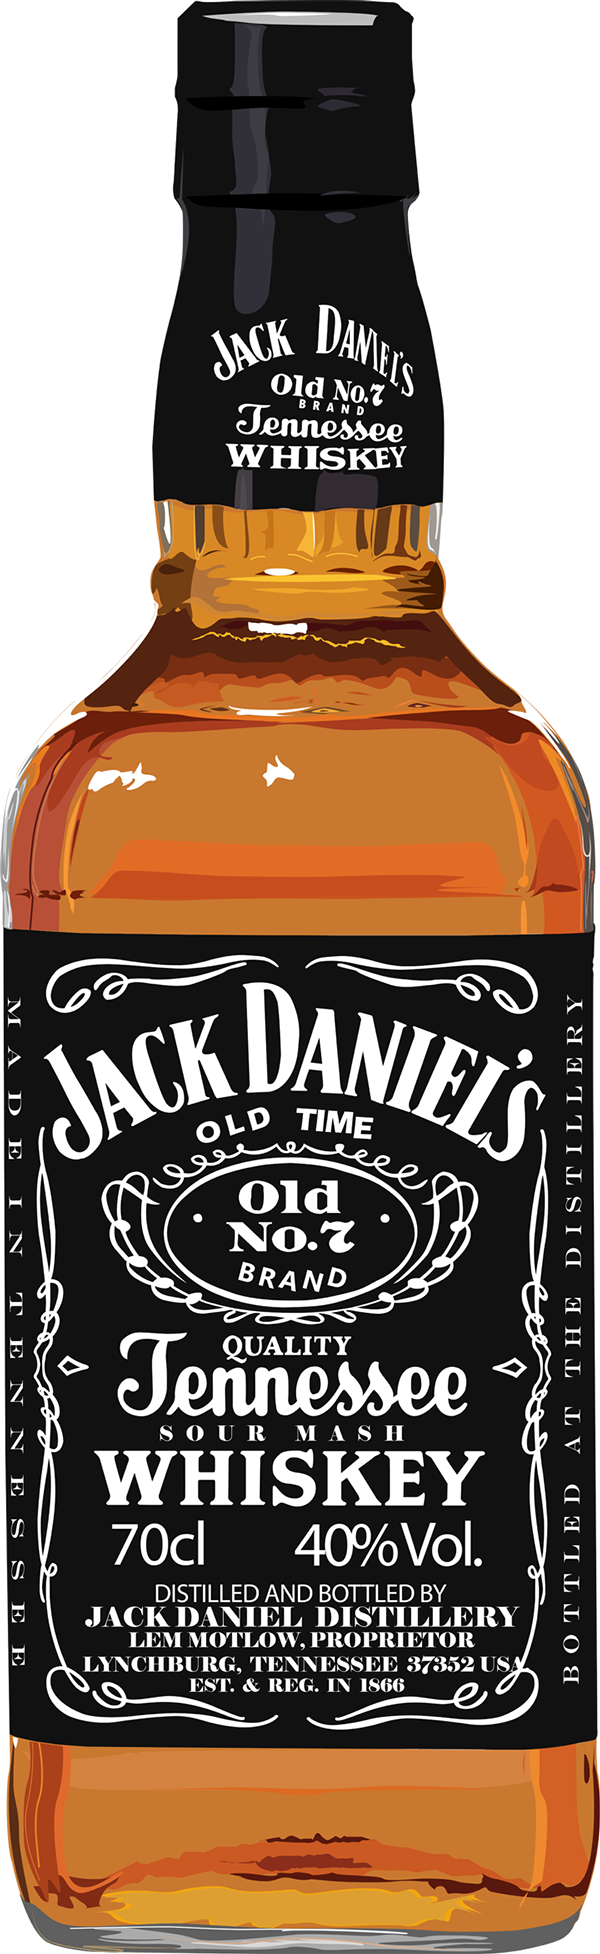 graphic royalty free stock Jack Daniel